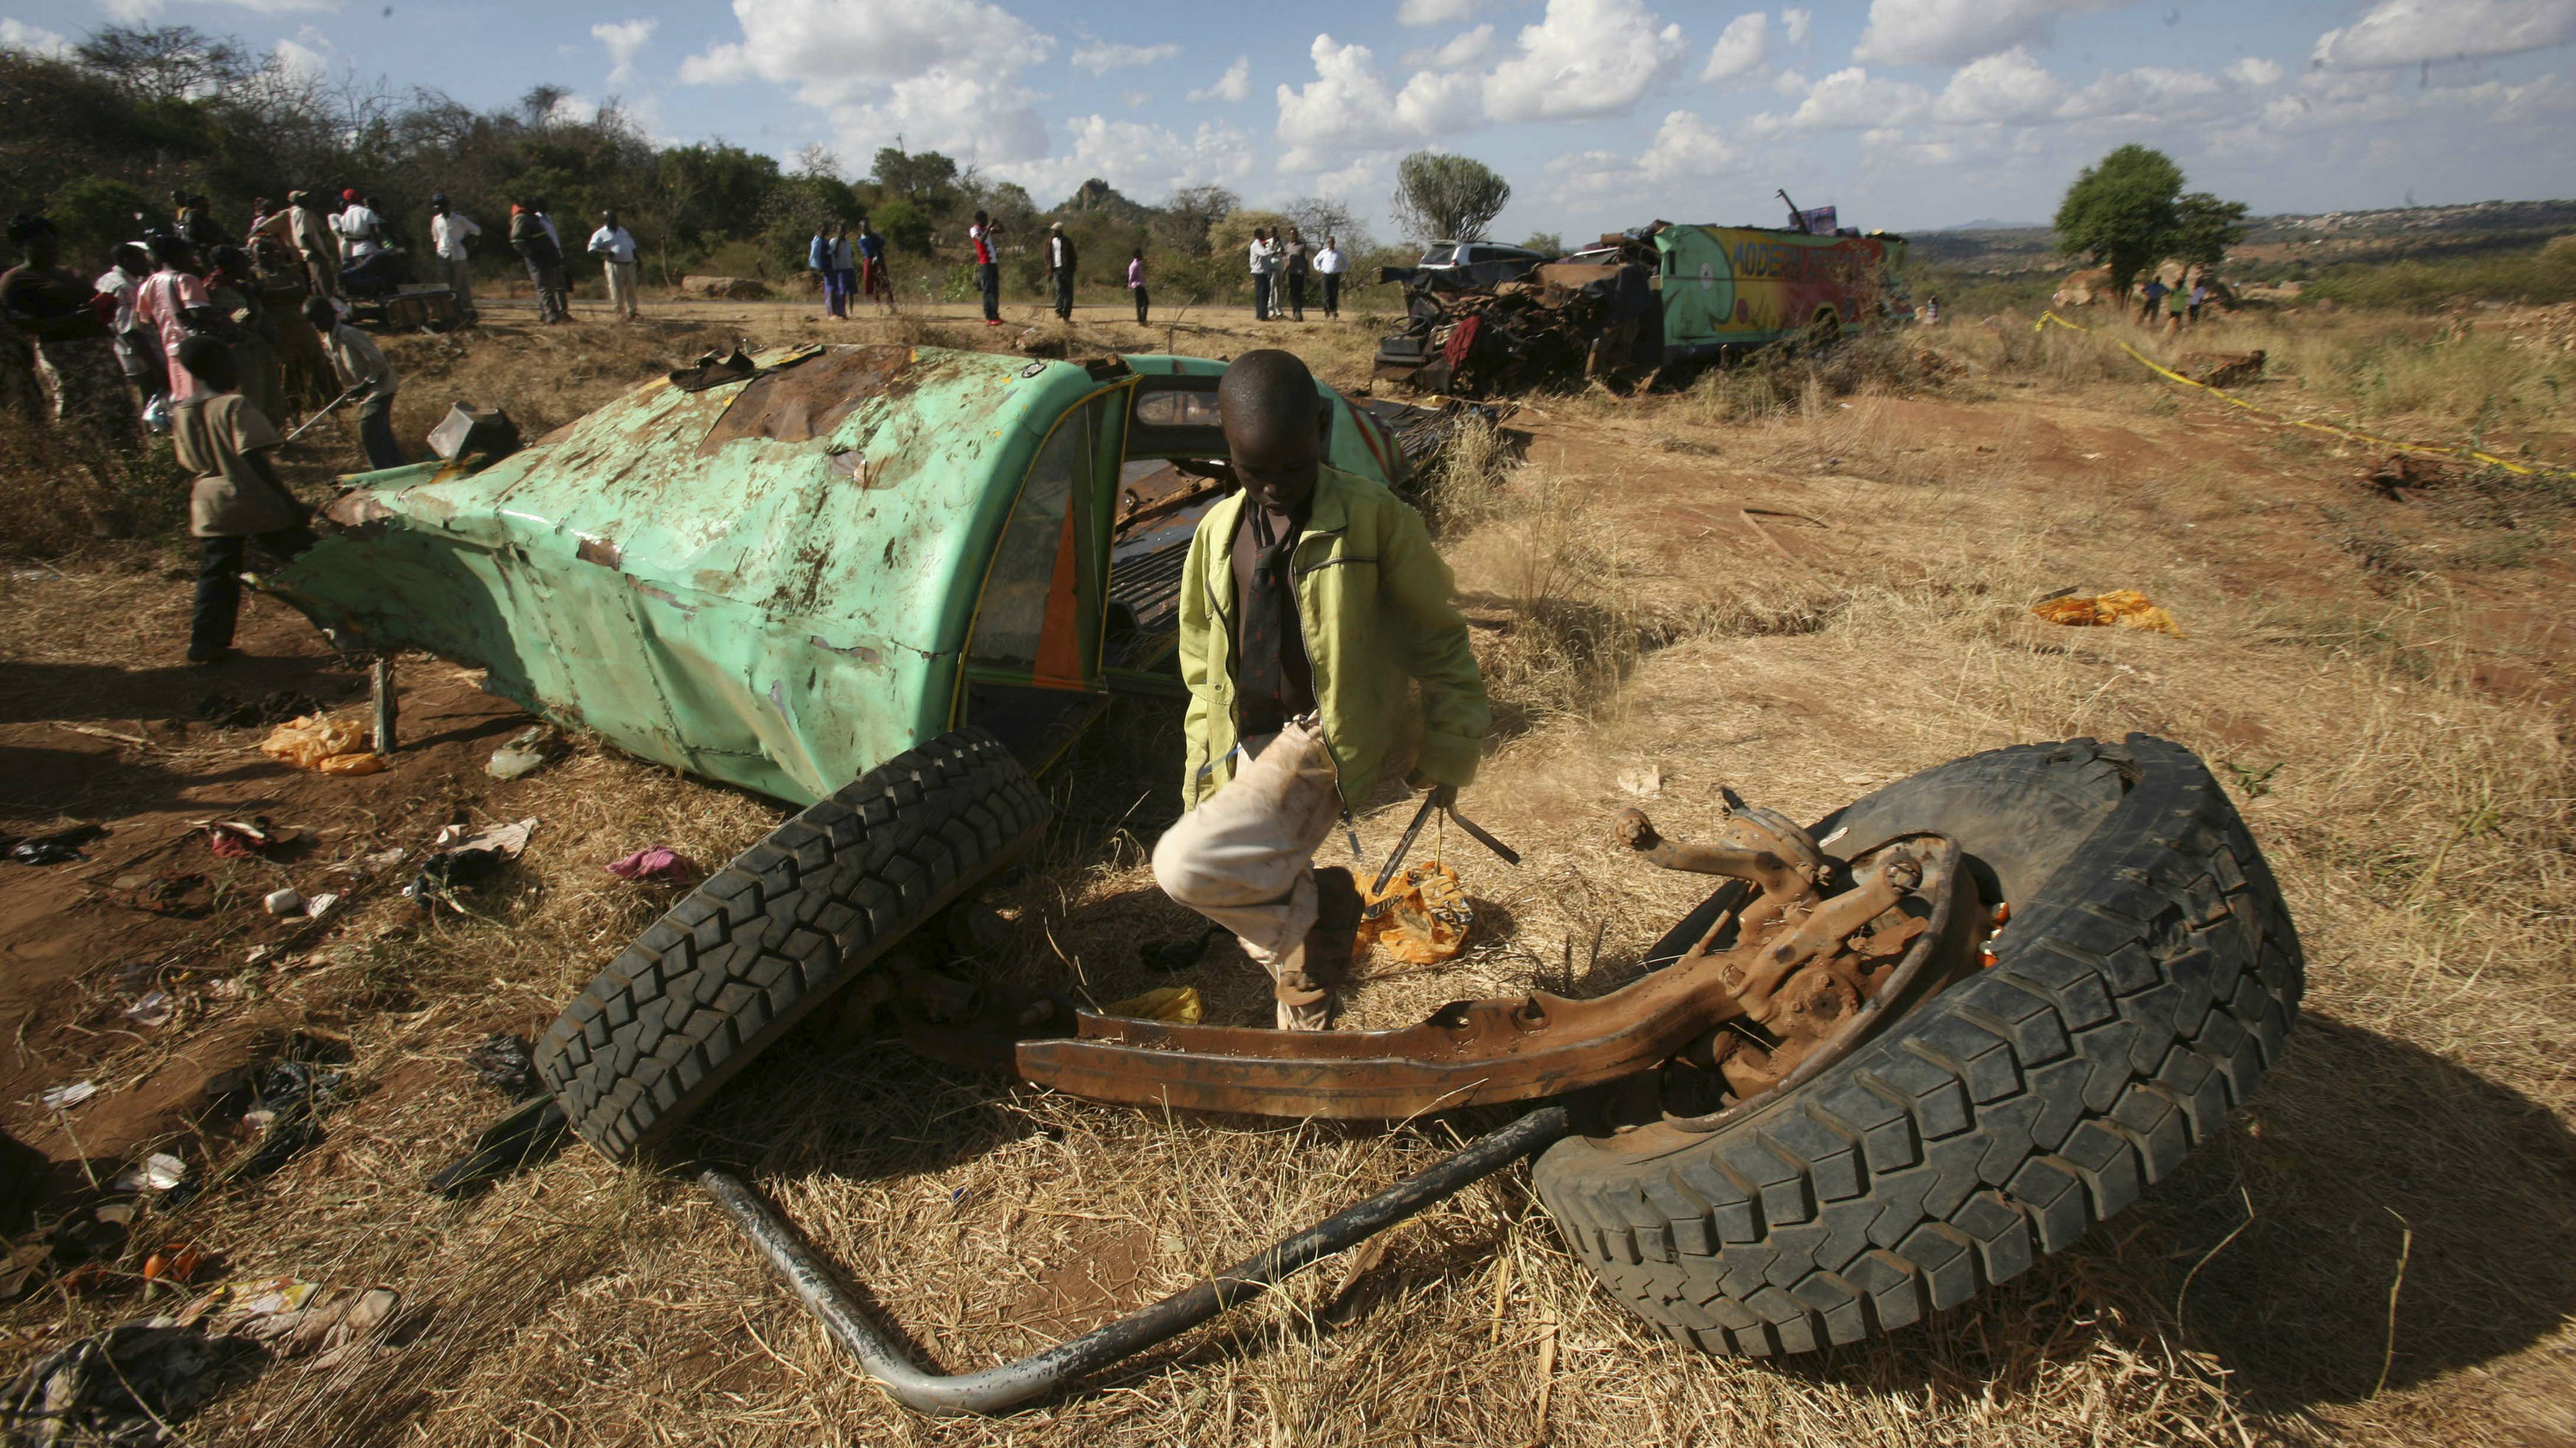 A boy walks at the scene of a passenger bus accident near Mwingi town in eastern Kenya February 27, 2013. At least 35 people were killed in the grisly road accident early Wednesday morning when the Garissa-bound bus lost control and rolled several times in Tulimani area, according to Traffic Commandant Samuel Kimaru. REUTERS/Gregory Olando